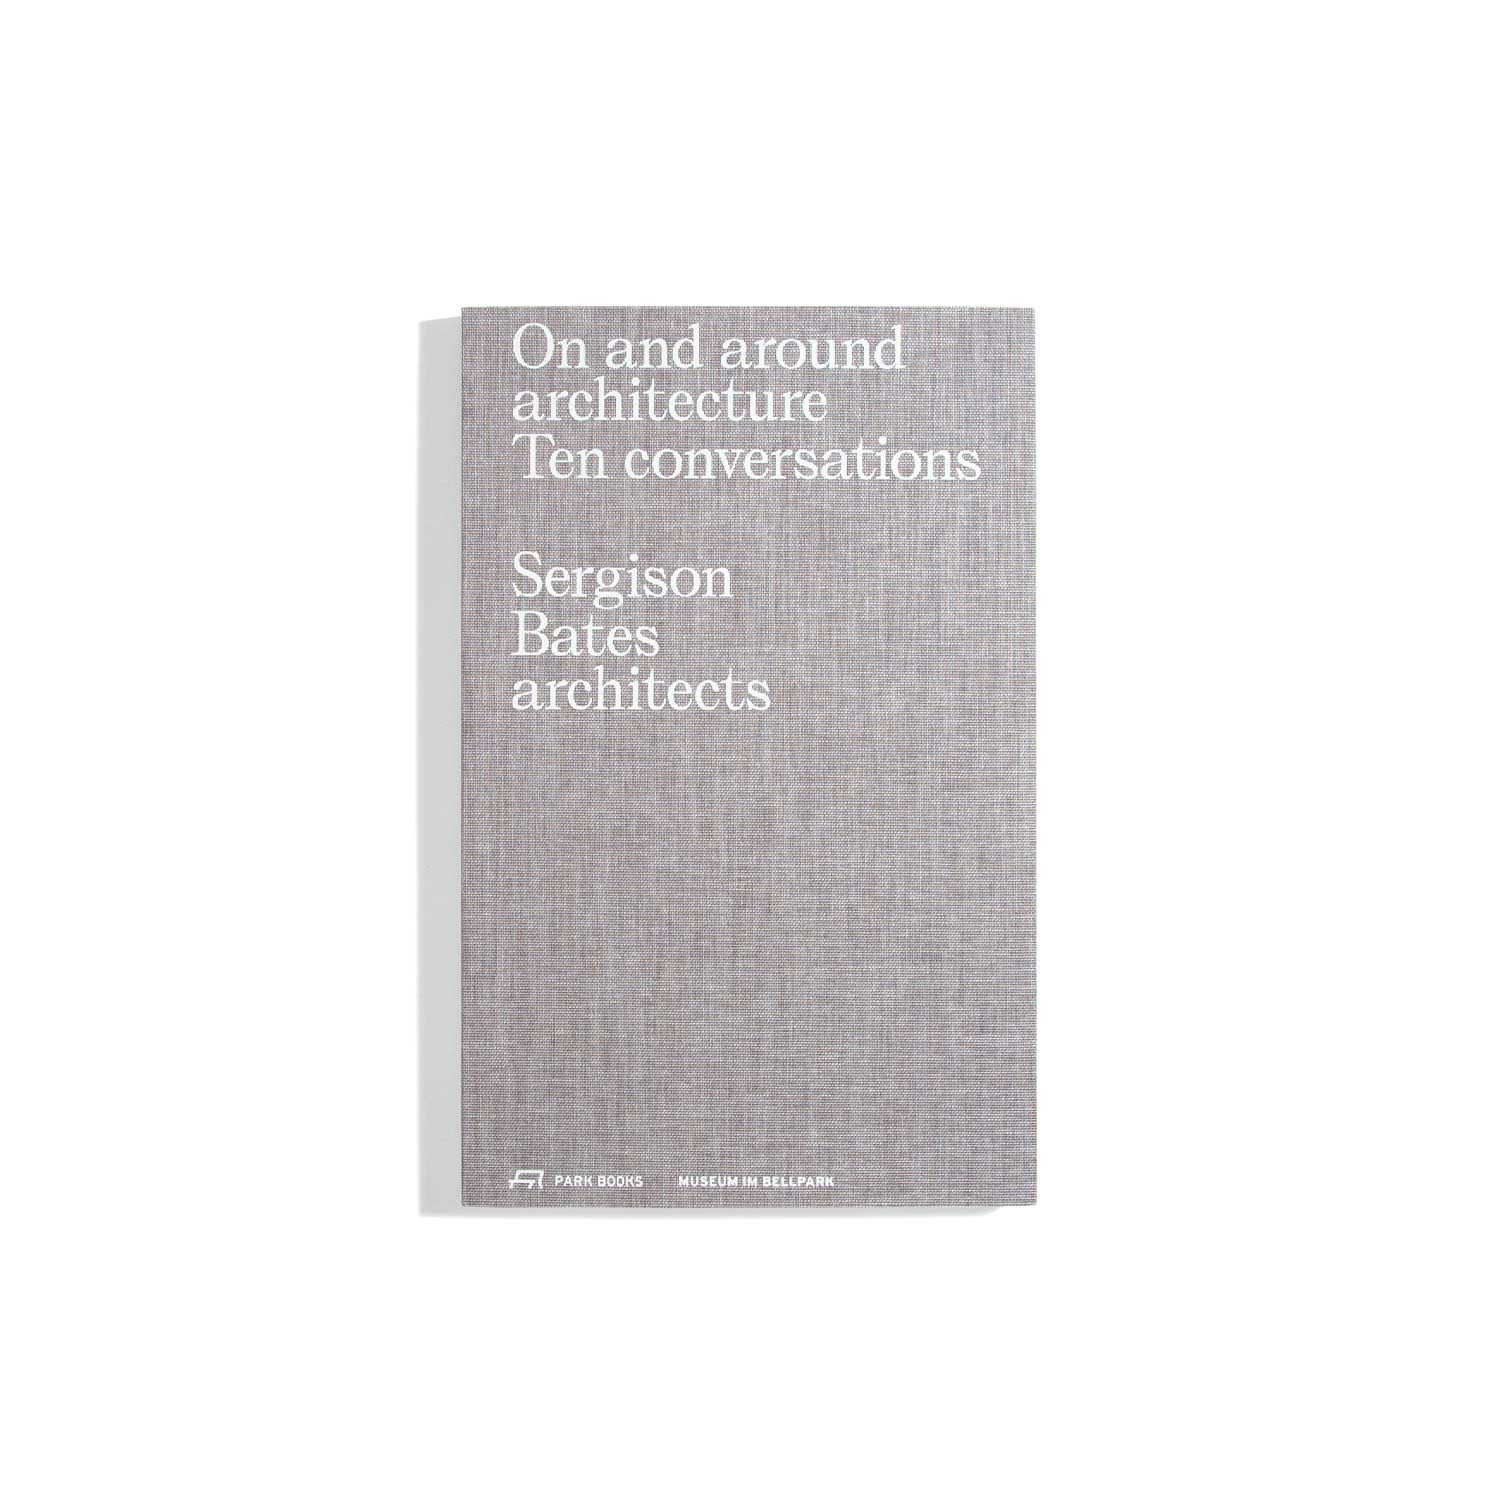 On and around architecture: Ten conversations